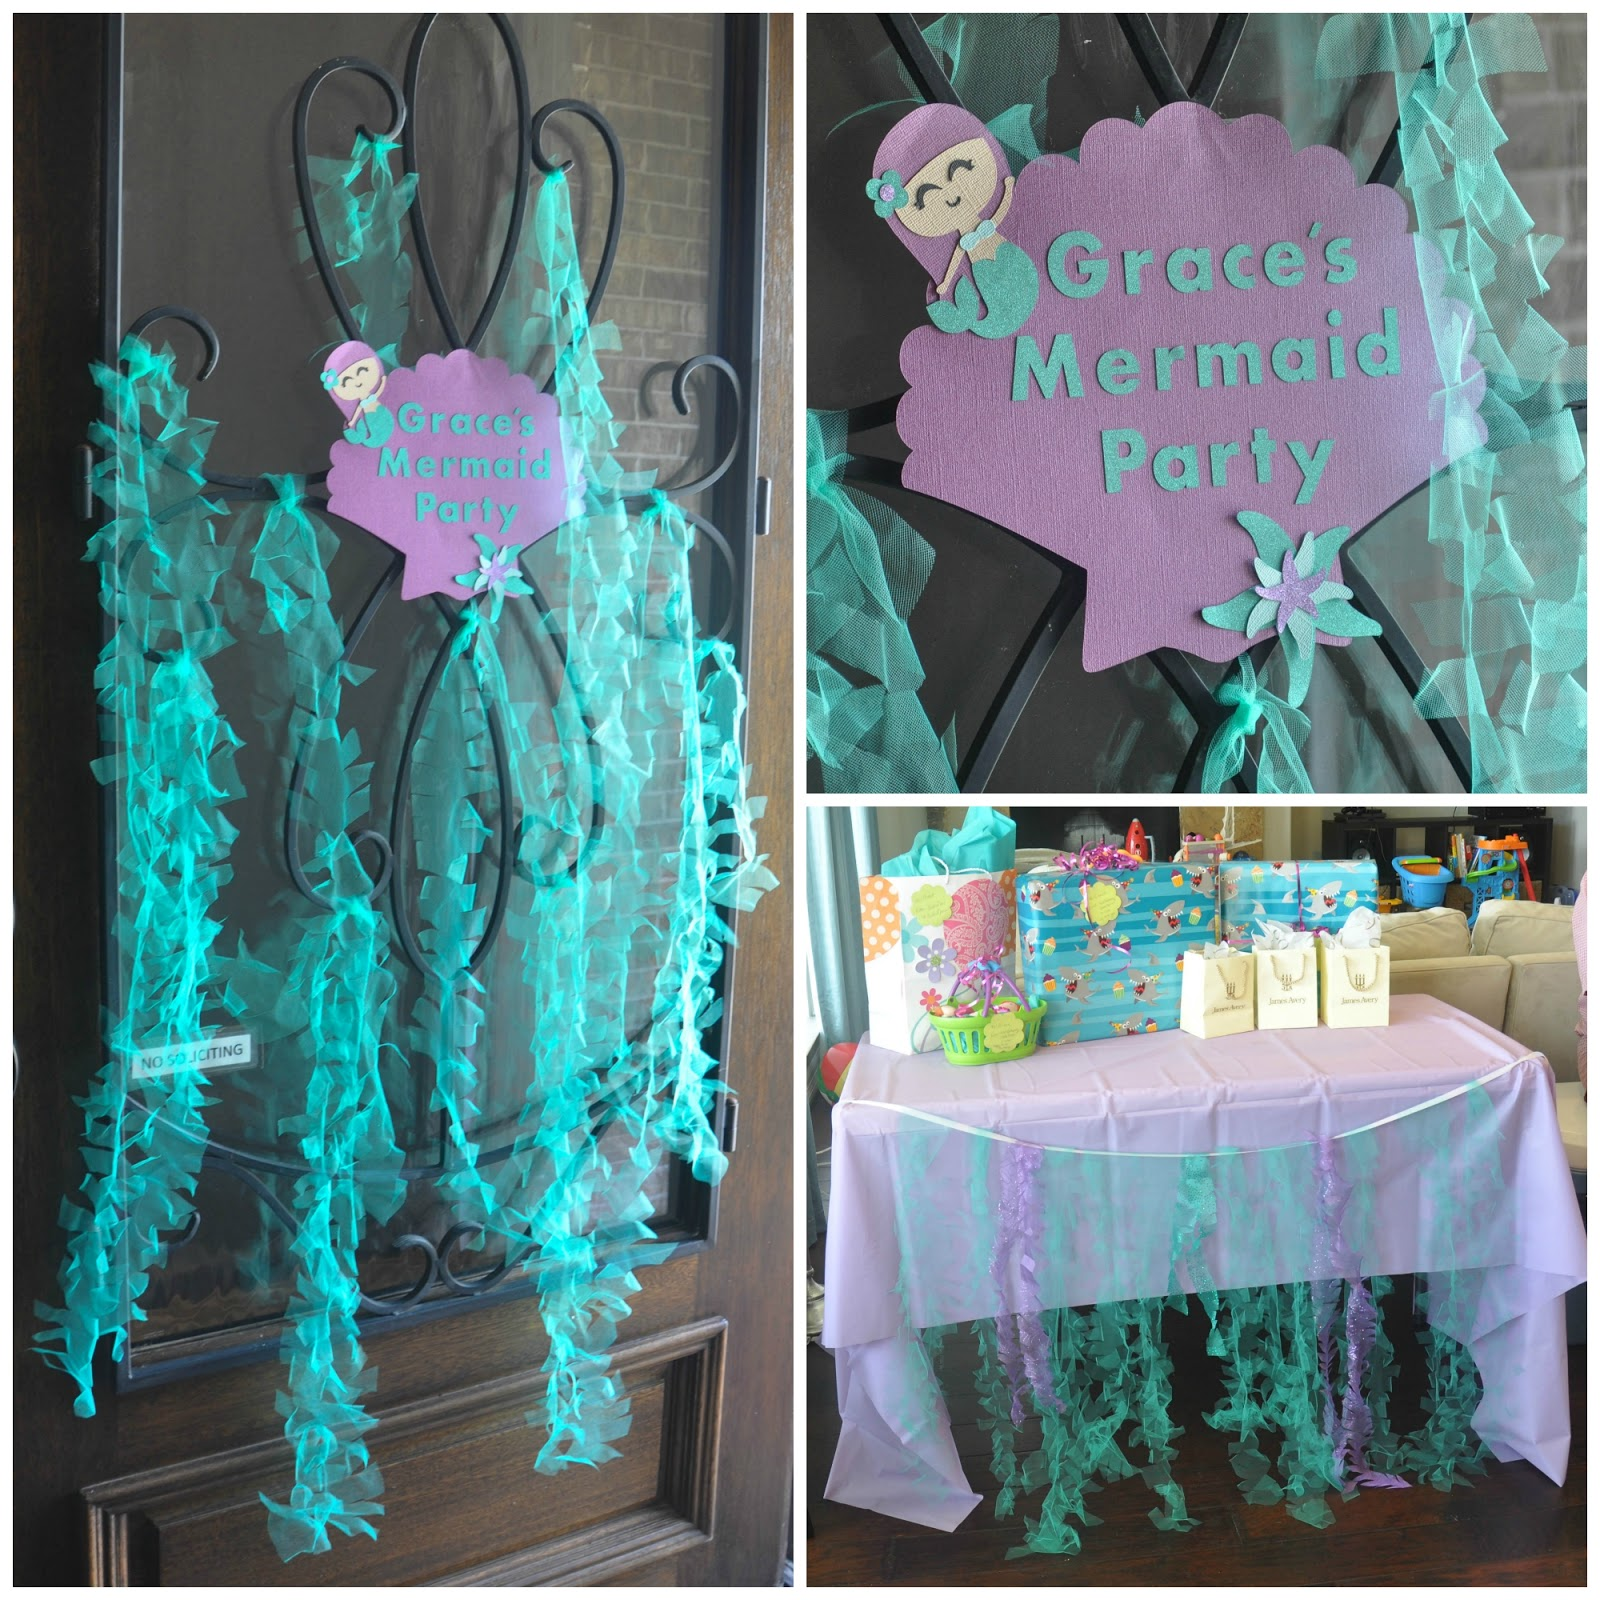 These Little Loves: Sparkly Mermaid Seaweed